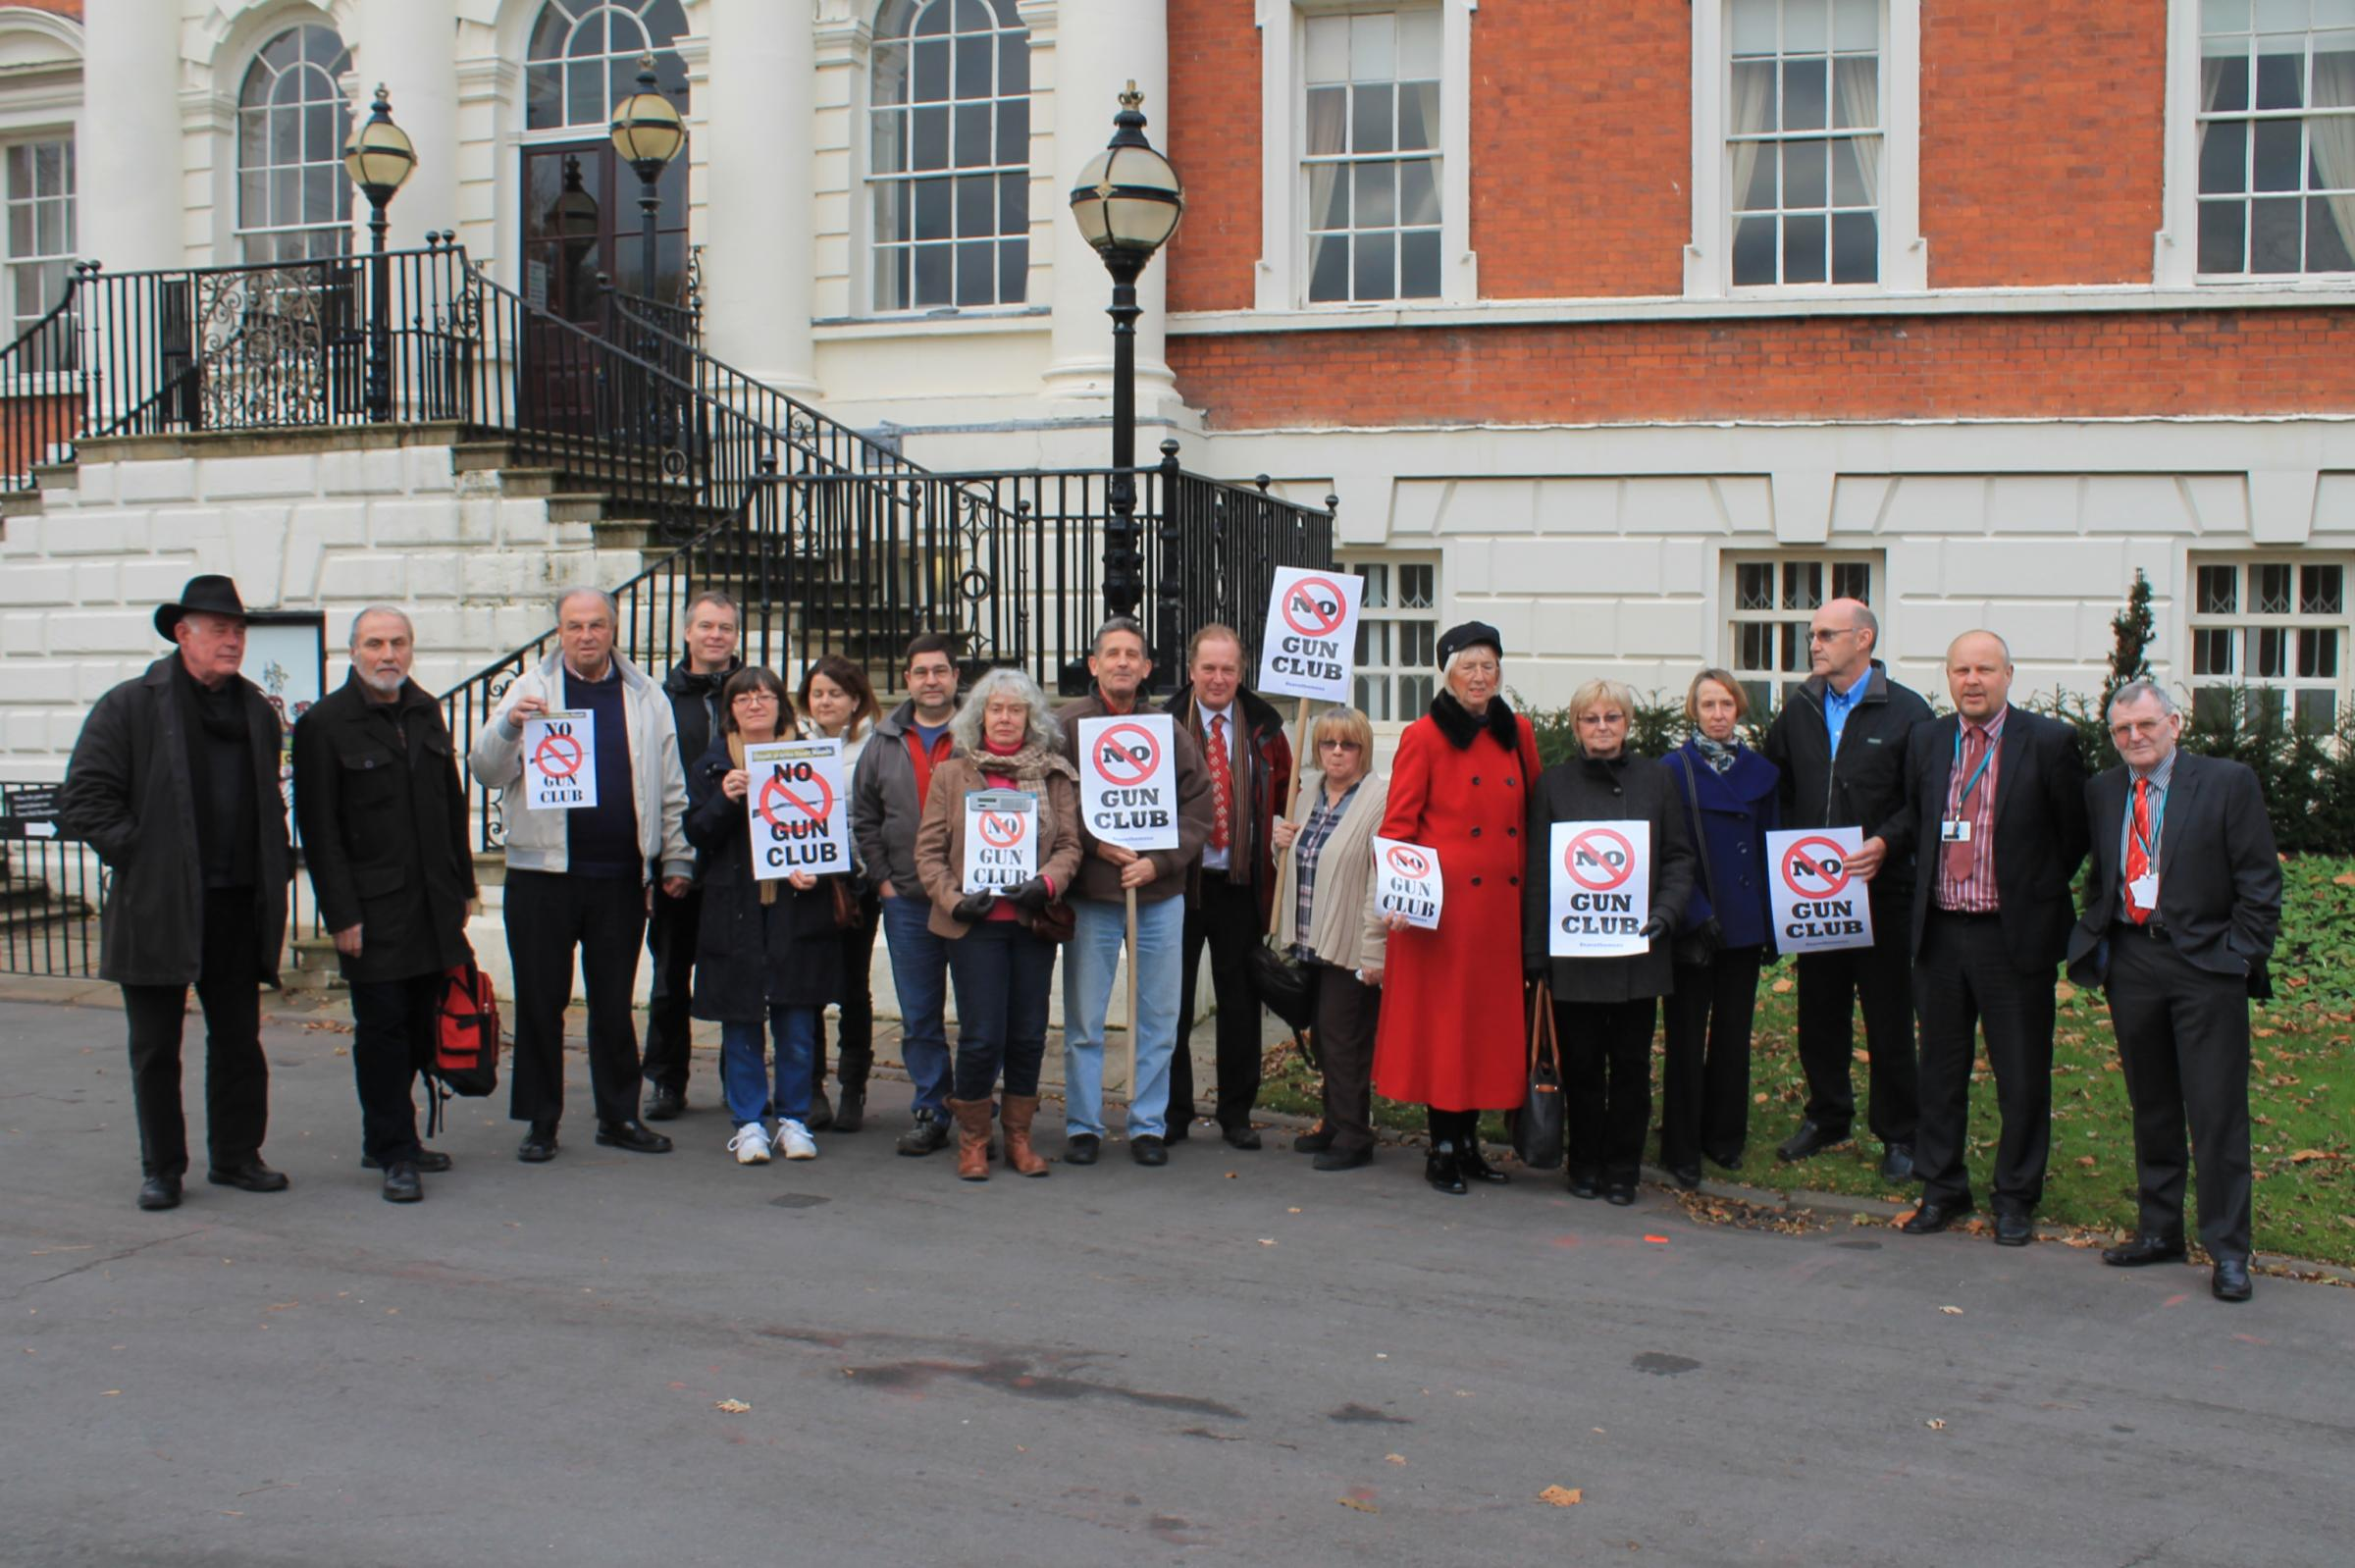 Protests at the Town Hall in November